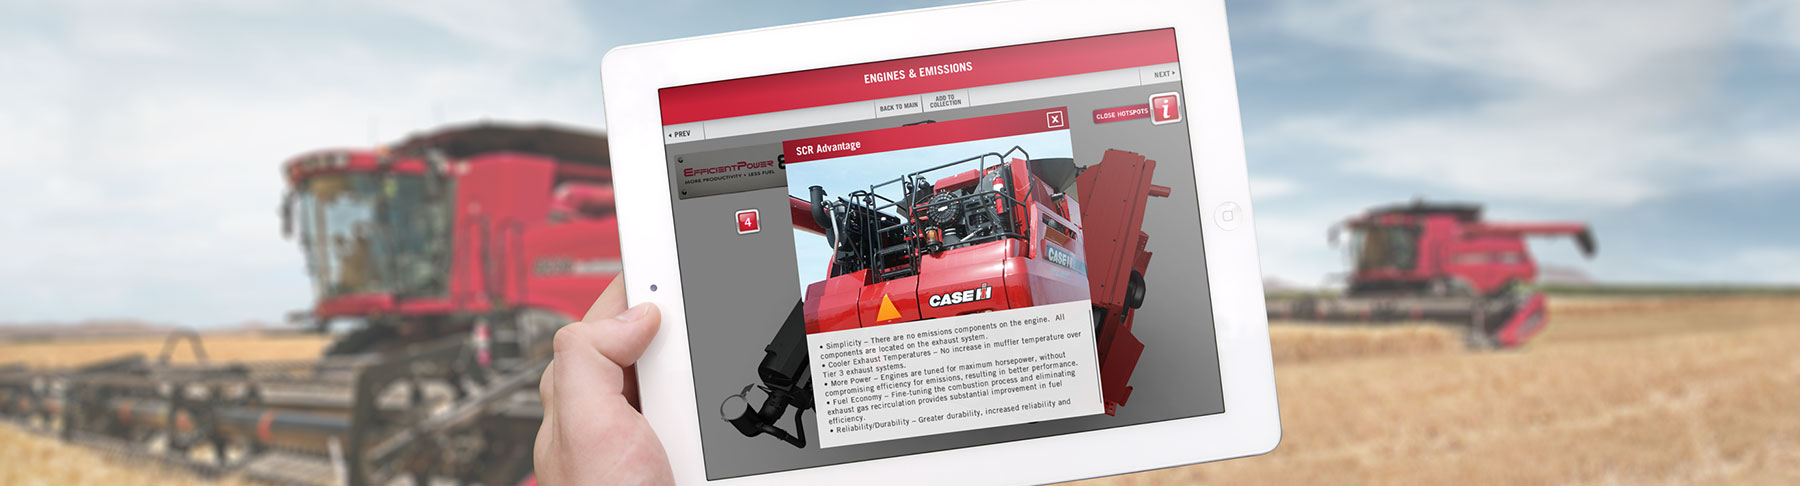 Case IH Mobile Application Image